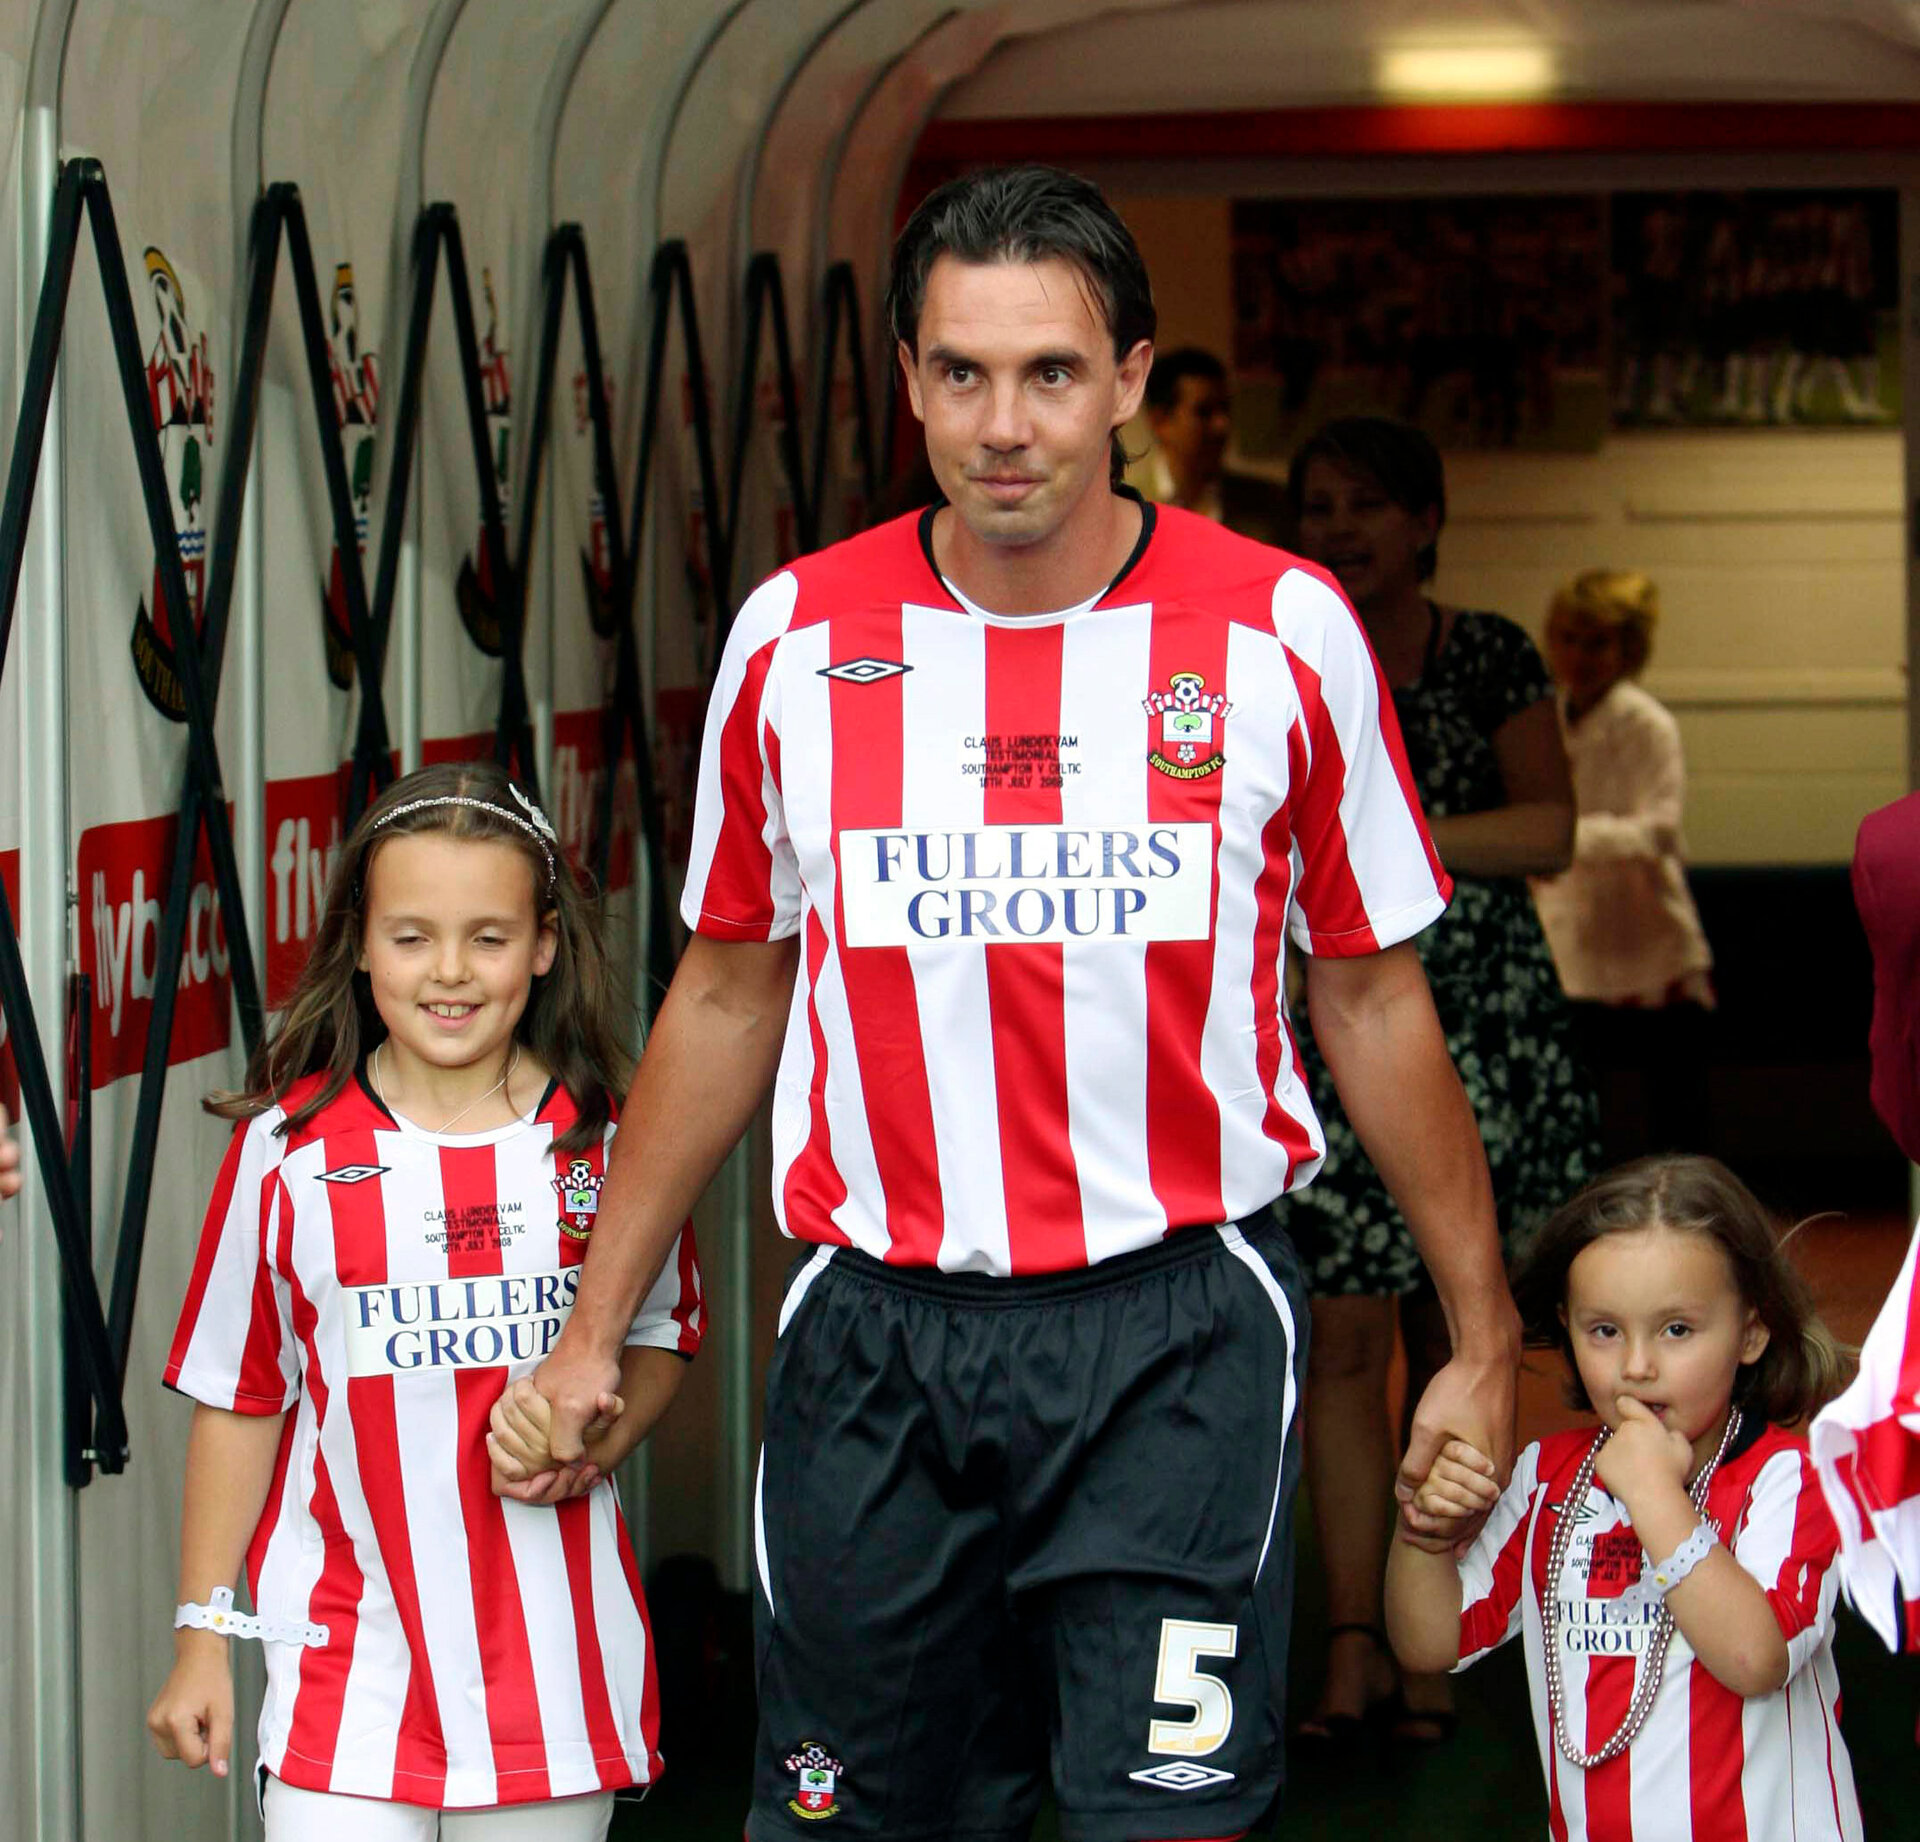 Football - Southampton v Celtic - Claus Lundekvam Testimonial  - St Mary's Stadium - 18/7/08  Southampton's Claus Lundekvam walks out of the tunnel with his children  Mandatory Credit: Action Images / Lee Mills  Livepic